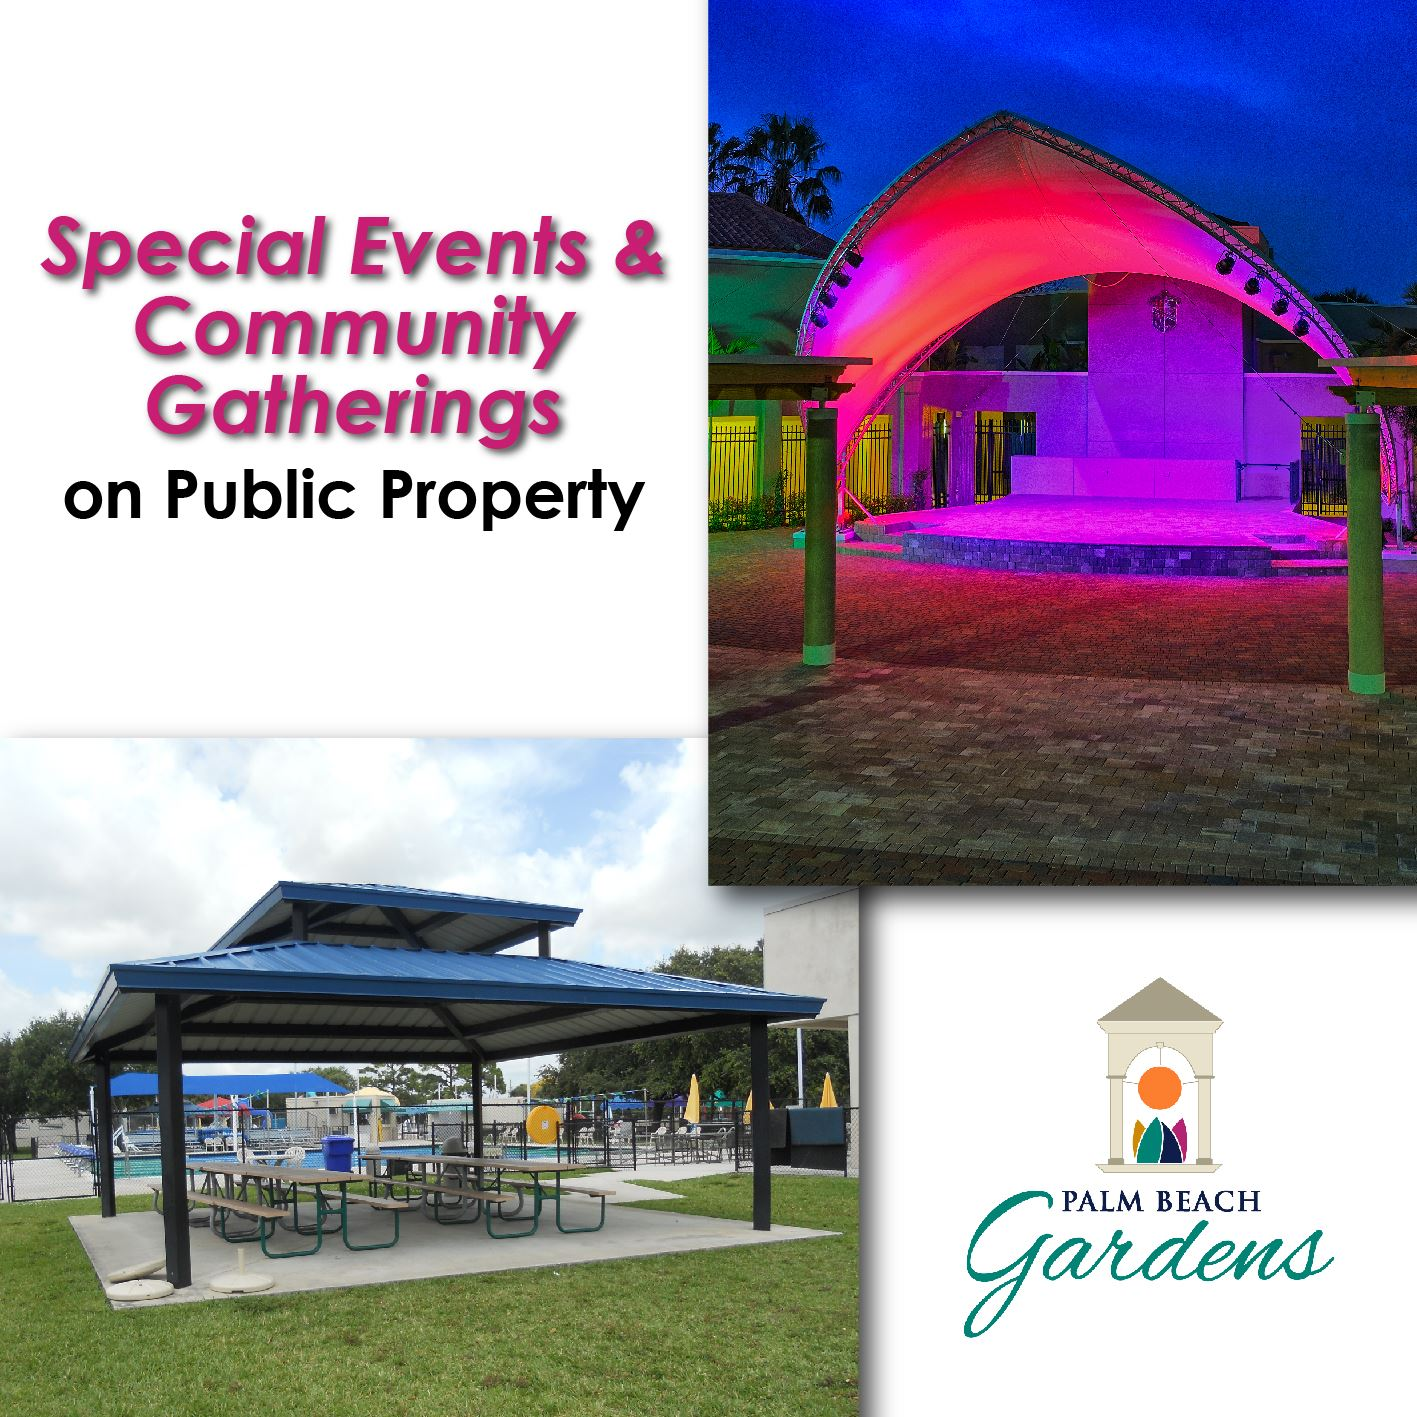 Special events and community gatherings notice on public property.